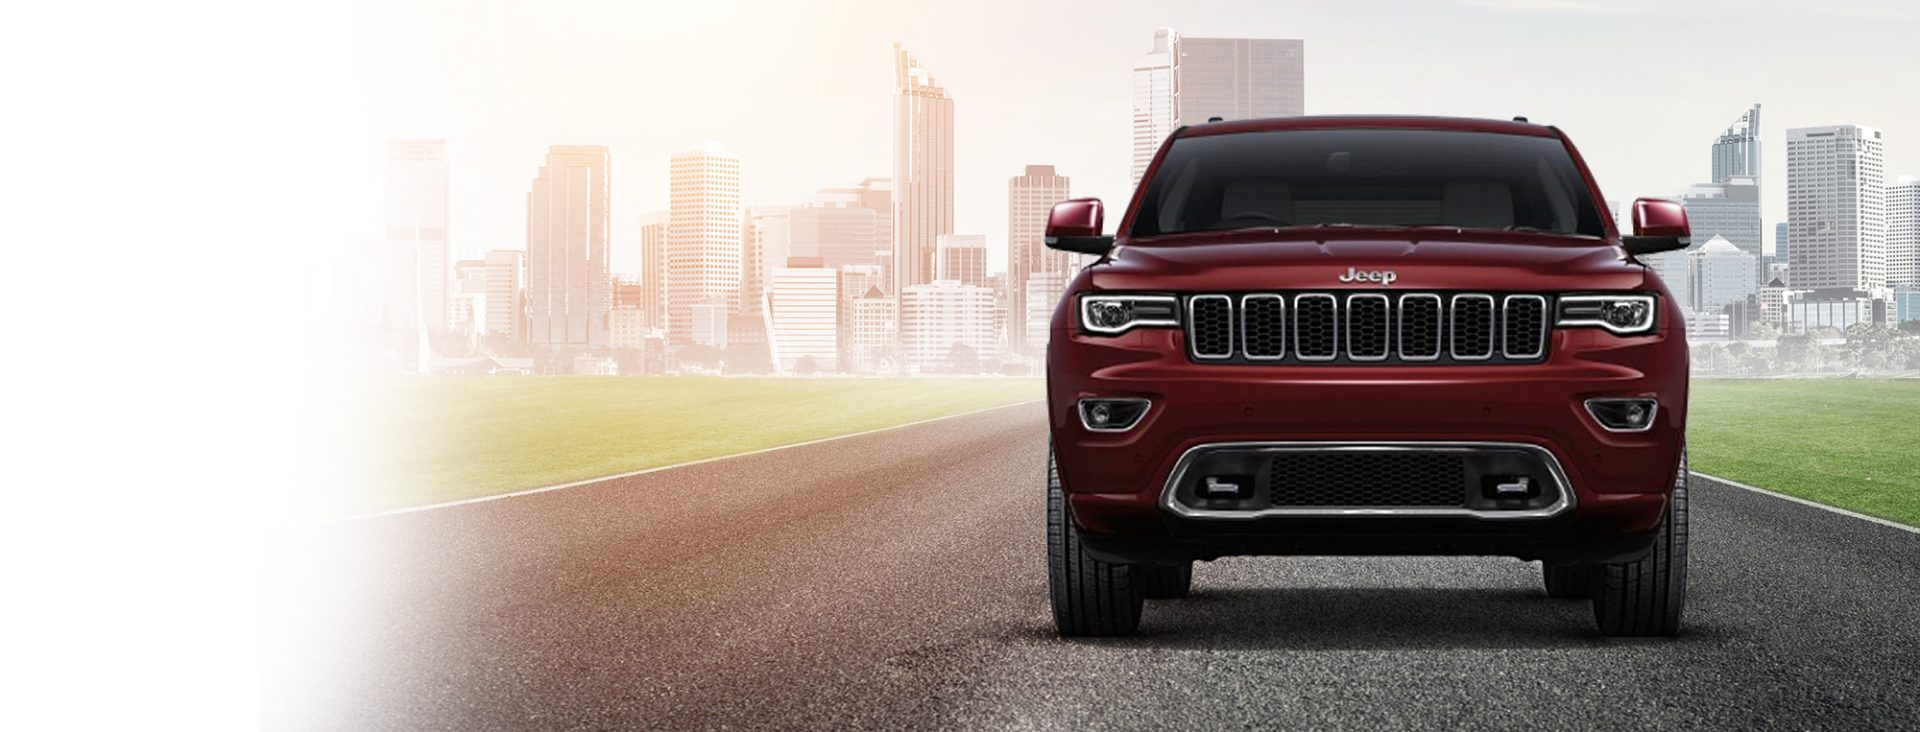 Charming Grand Cherokee Safety And Security. JEEP® GRAND CHEROKEE